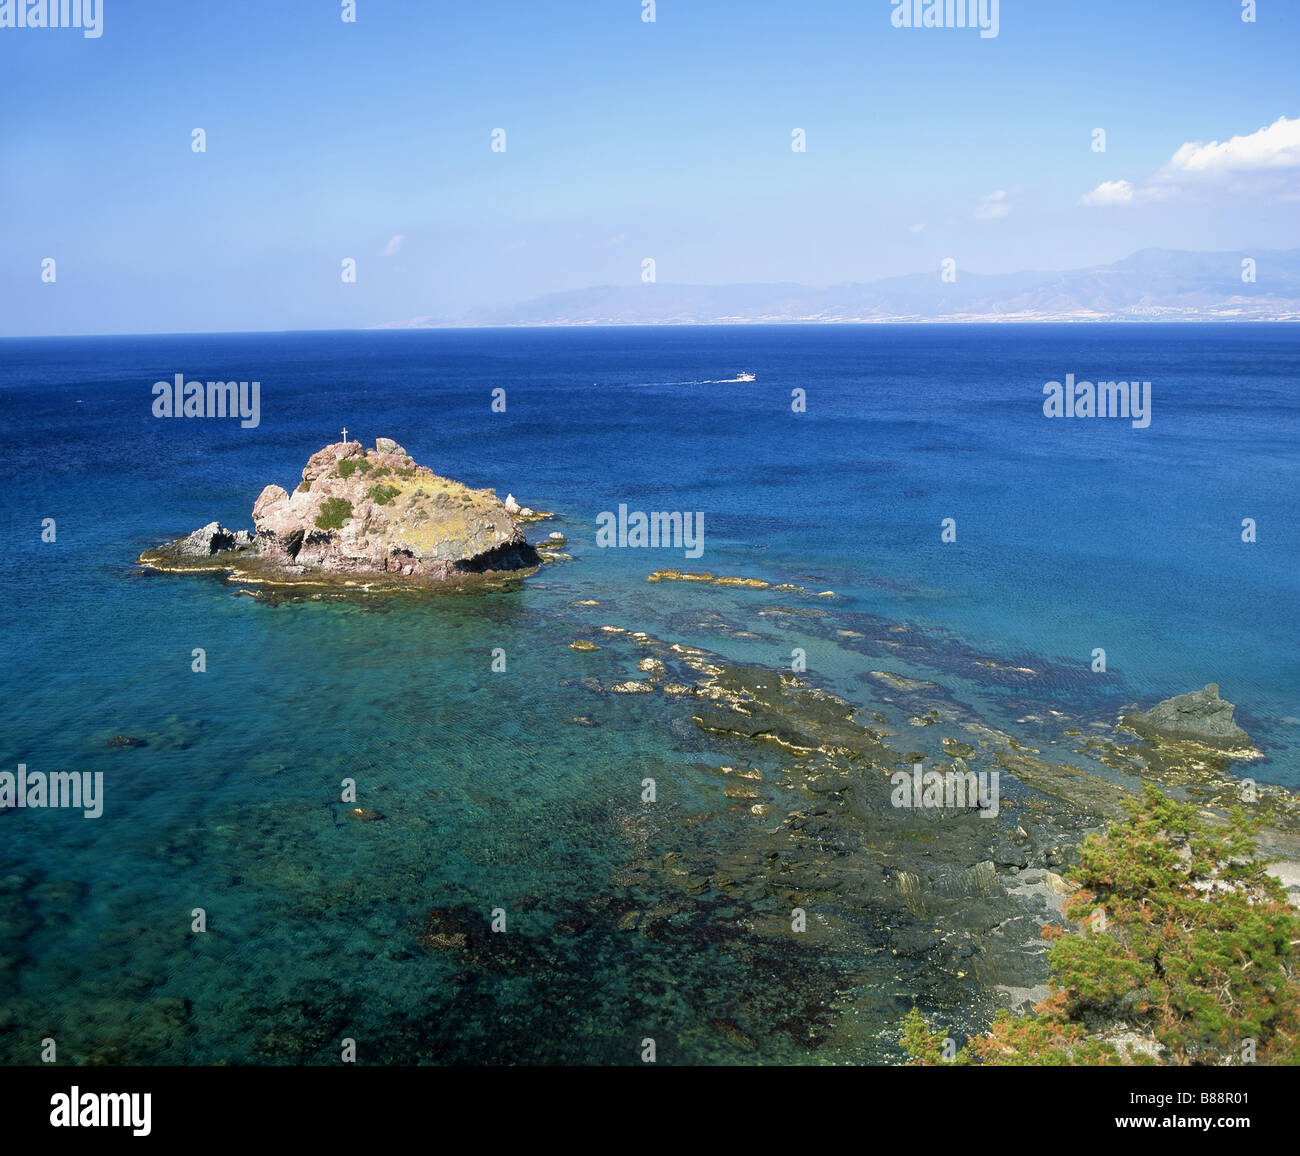 cyprus baths of aphrodite stockfotos cyprus baths of aphrodite bilder seite 2 alamy. Black Bedroom Furniture Sets. Home Design Ideas